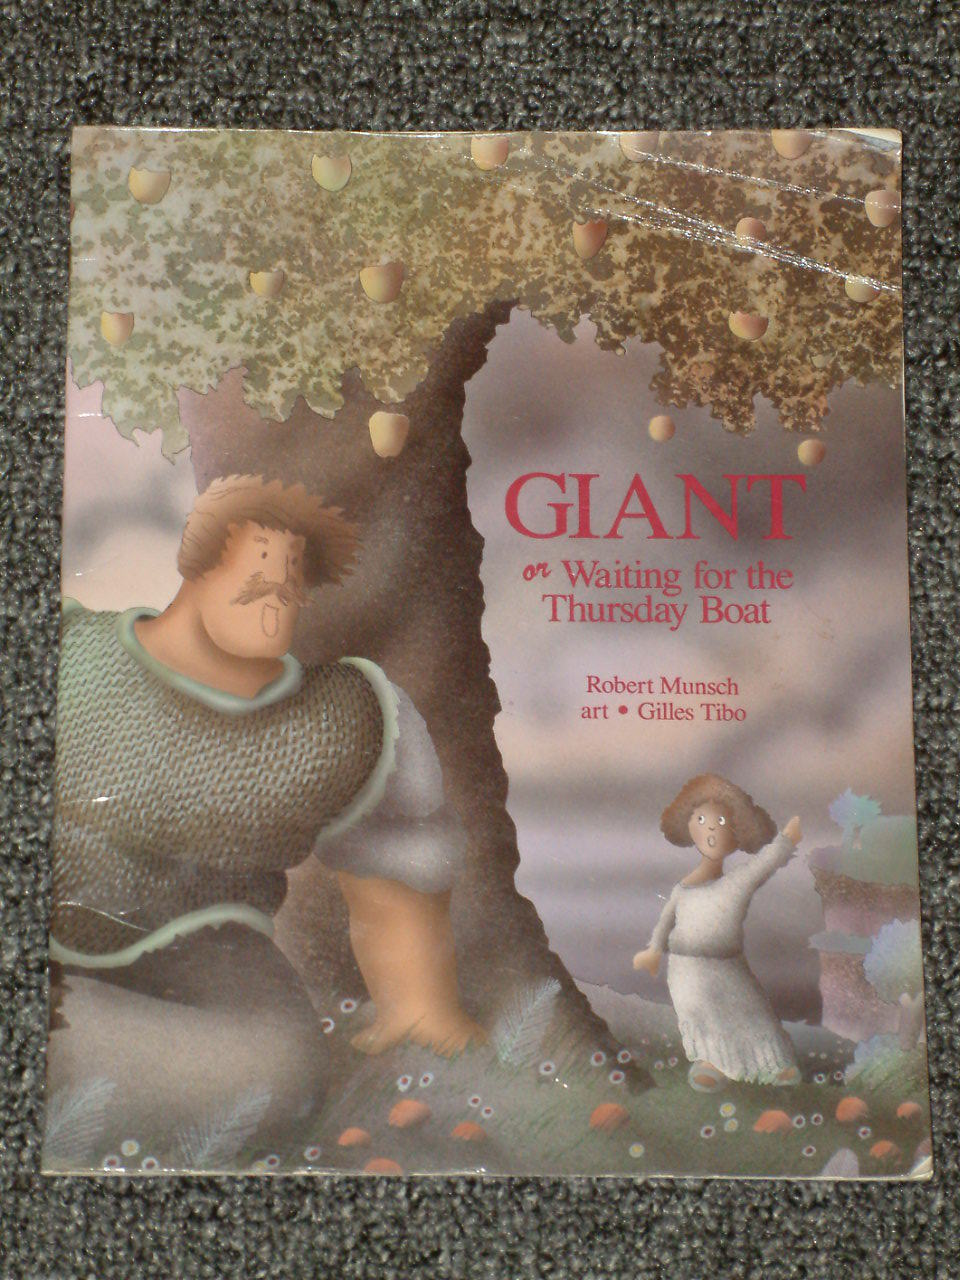 Giant or Waiting for the Thursday Boat by Robert Munsch